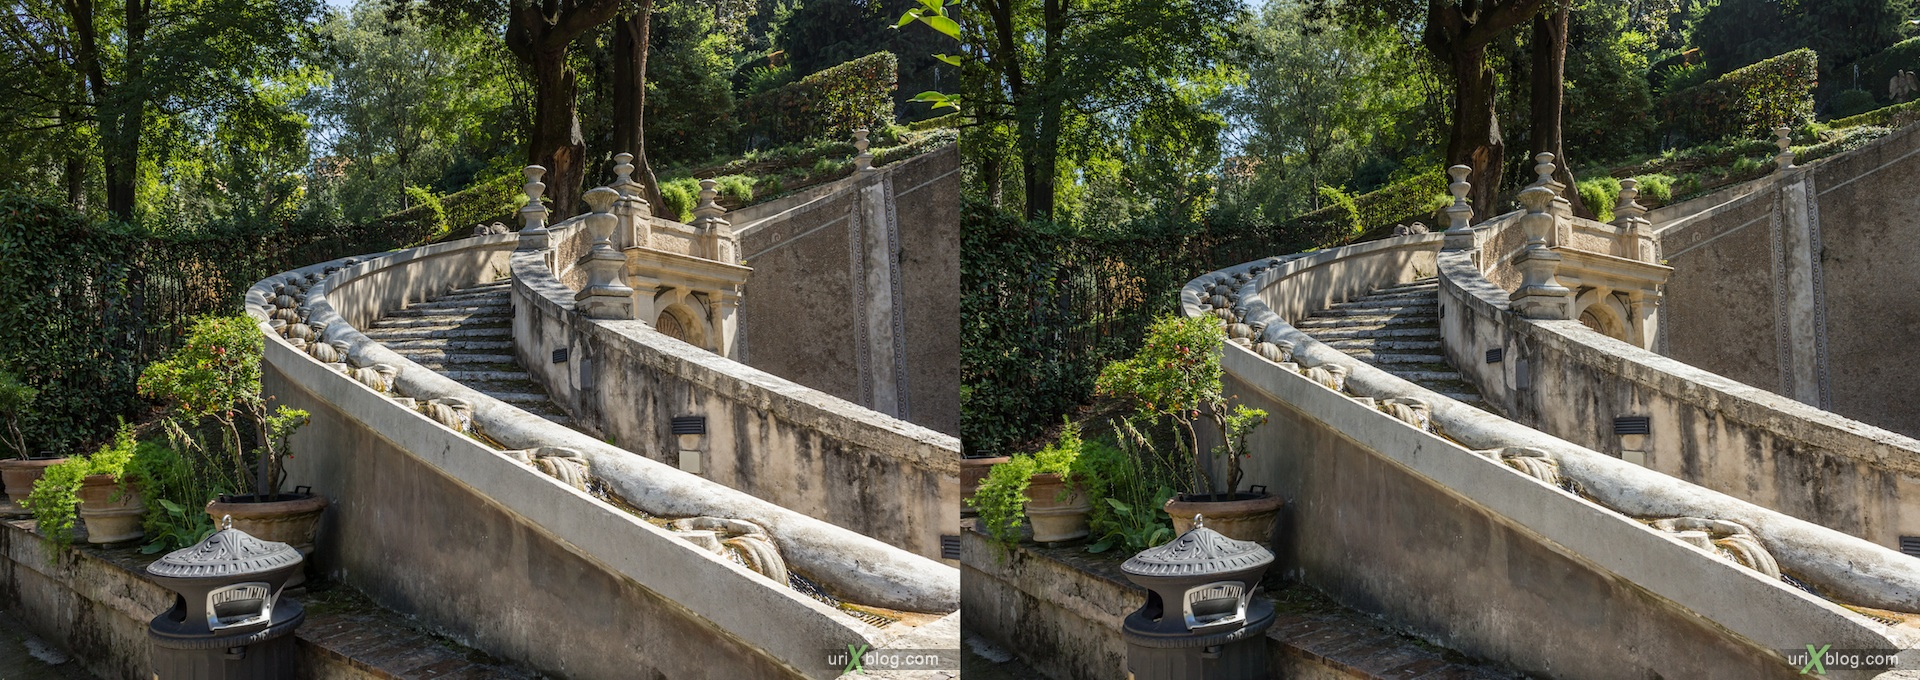 2012, stairs, Fontana dei Draghi, villa D'Este, Italy, Tivoli, Rome, 3D, stereo pair, cross-eyed, crossview, cross view stereo pair